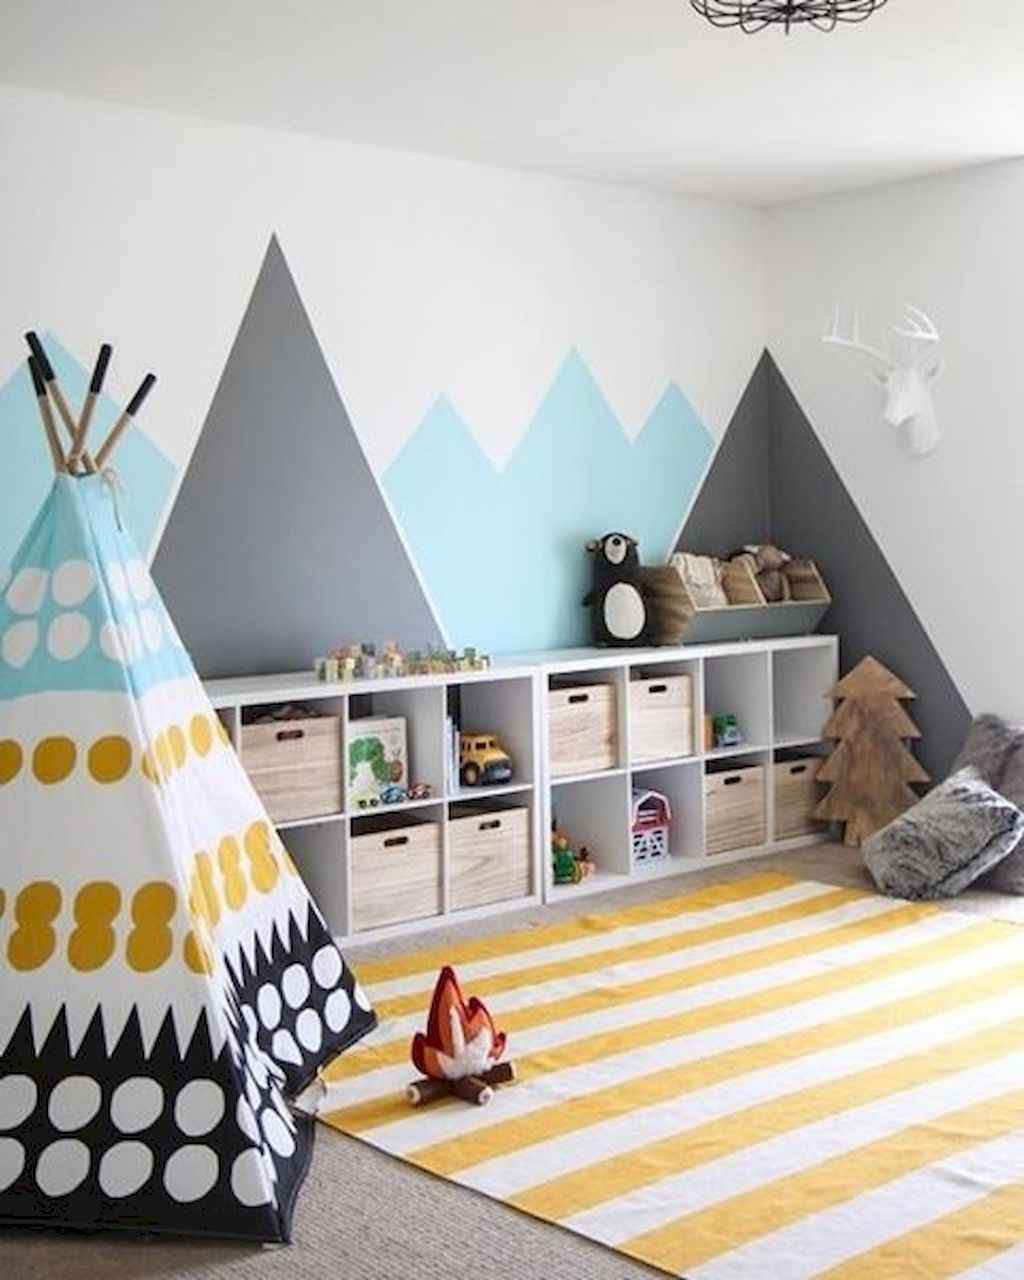 Simply ideas bedroom for kids (9)